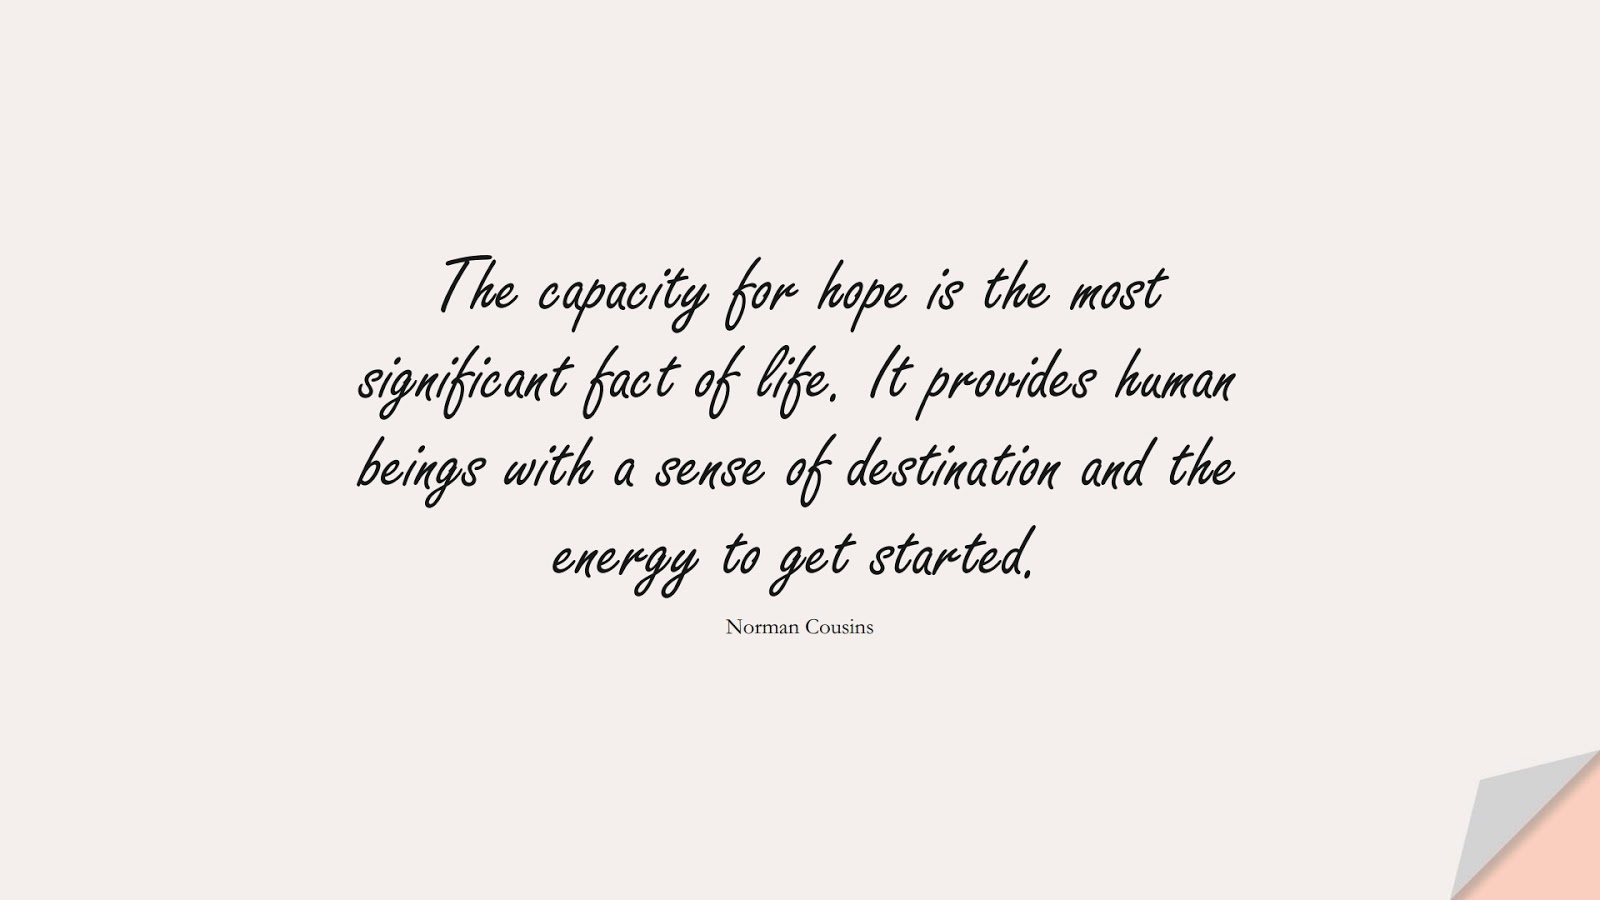 The capacity for hope is the most significant fact of life. It provides human beings with a sense of destination and the energy to get started. (Norman Cousins);  #HopeQuotes